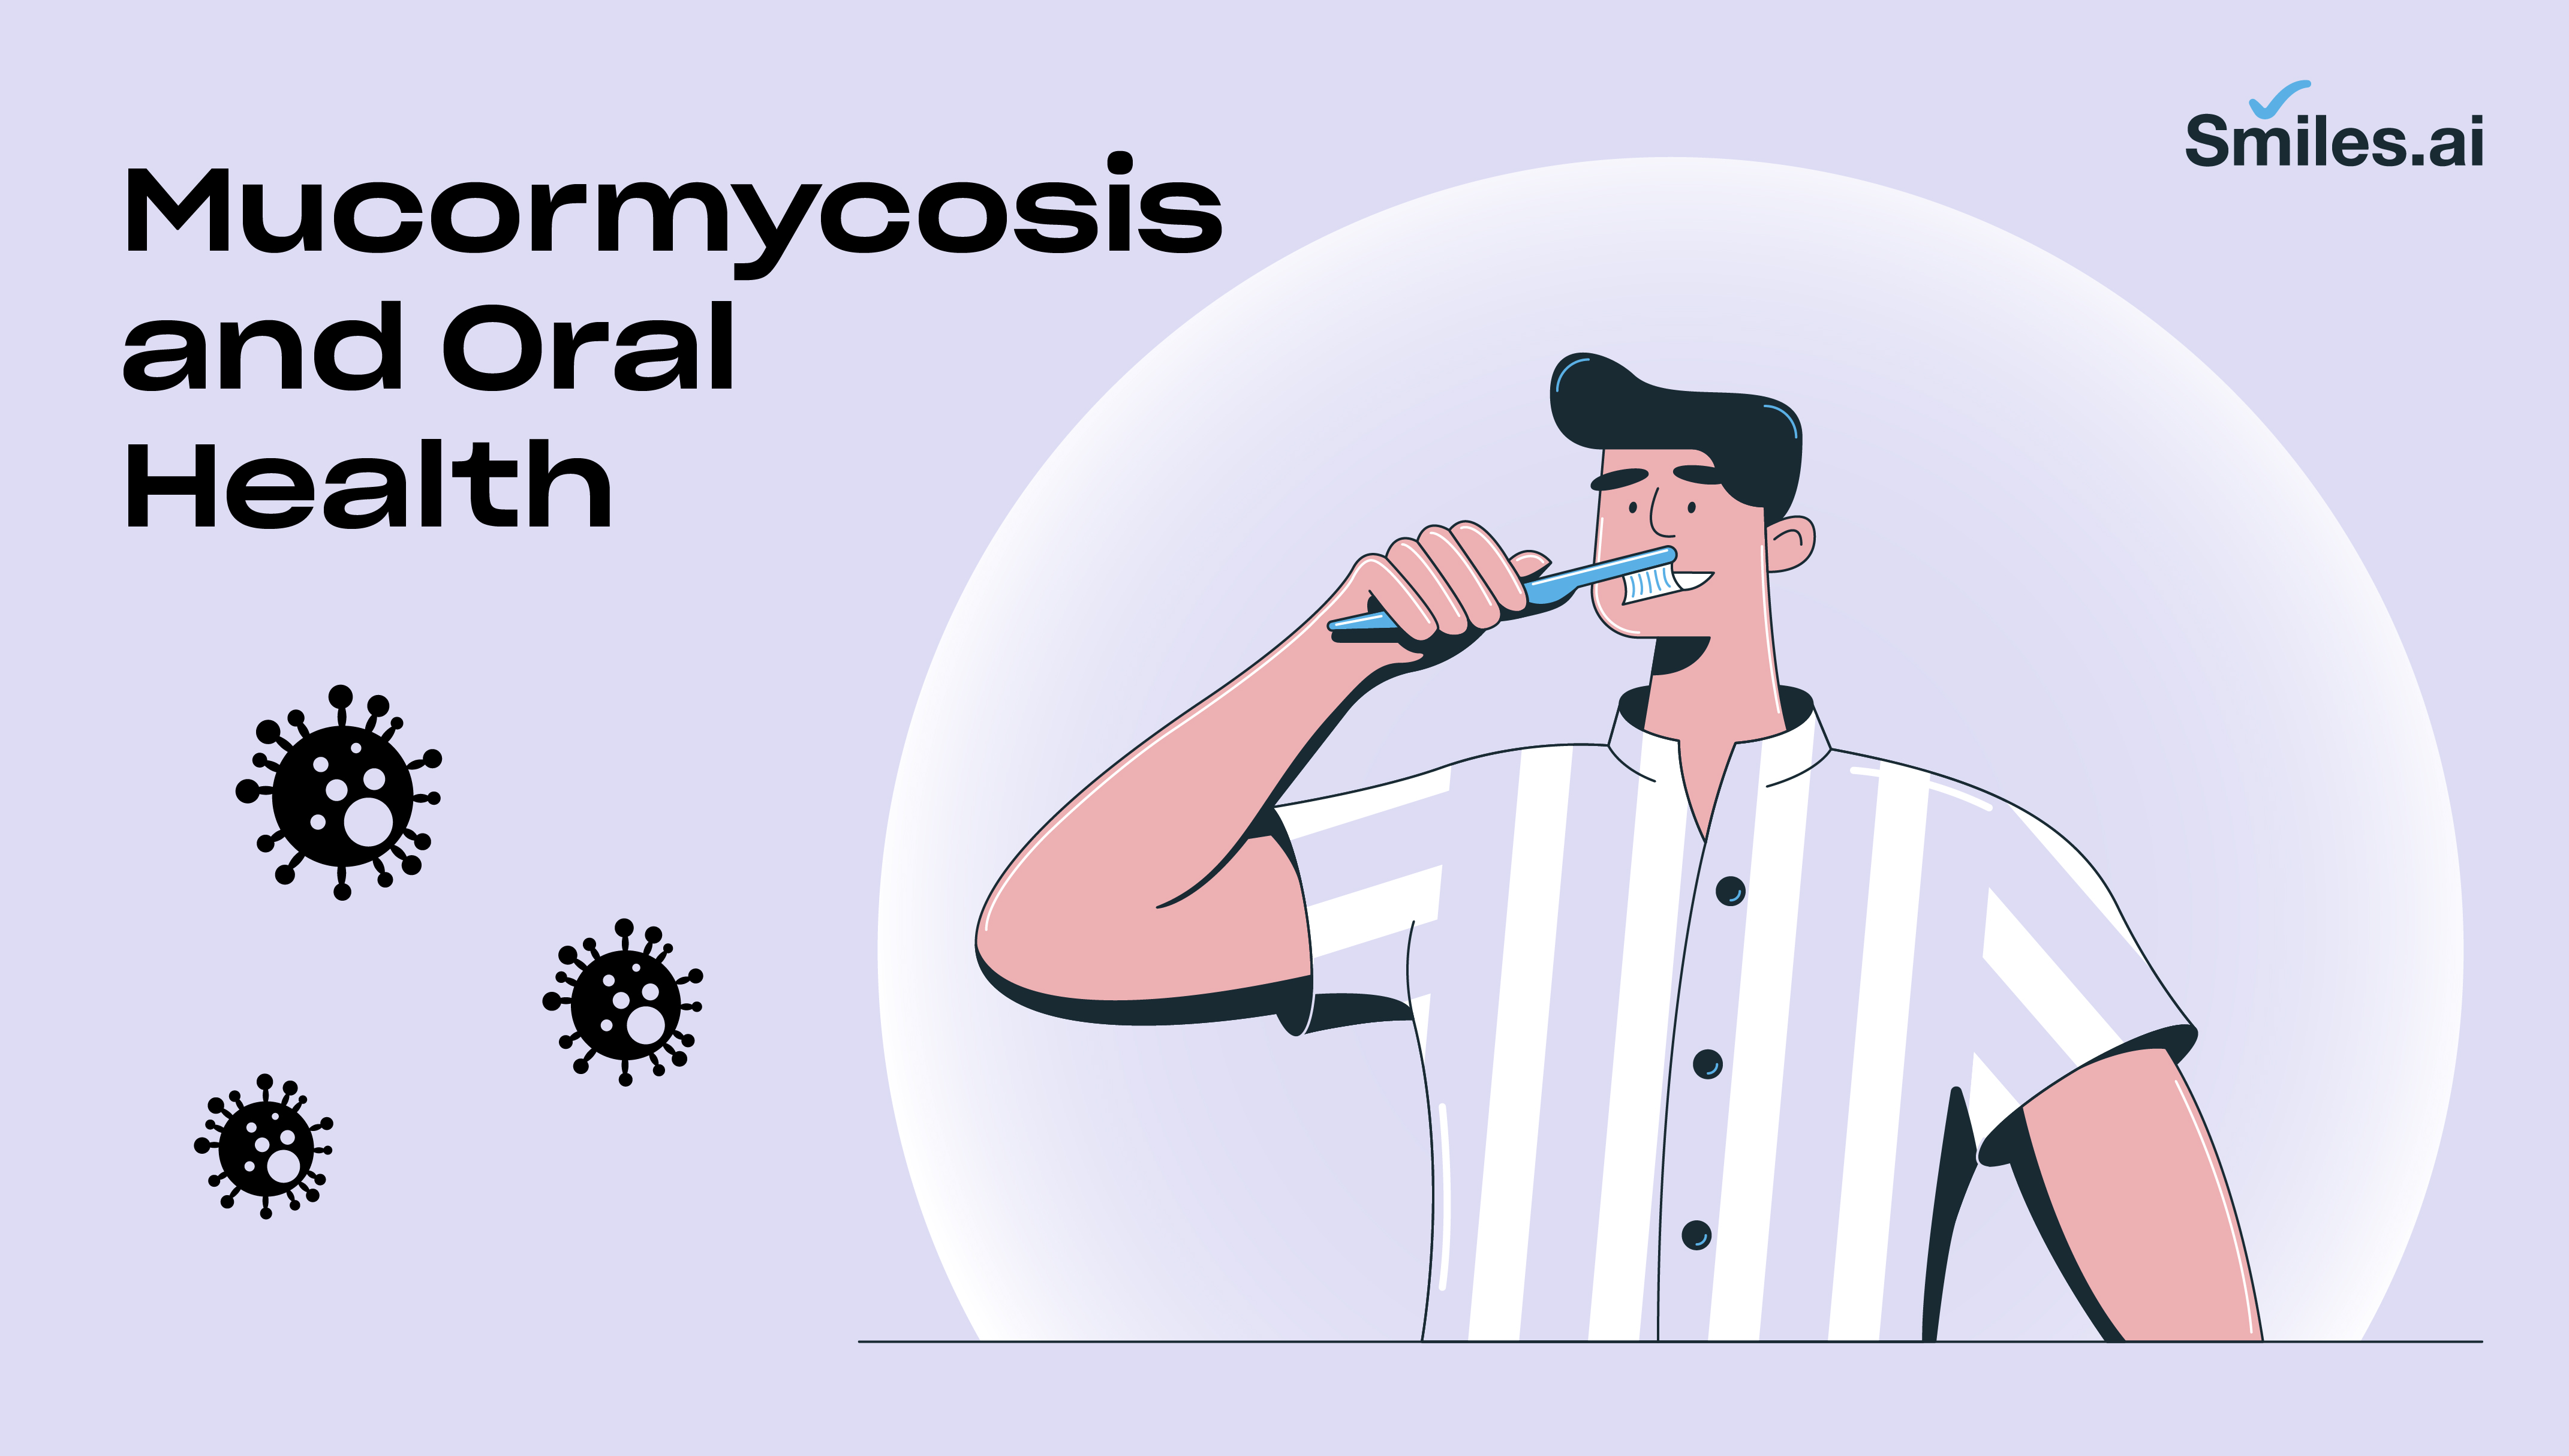 mucormycosis and oral health